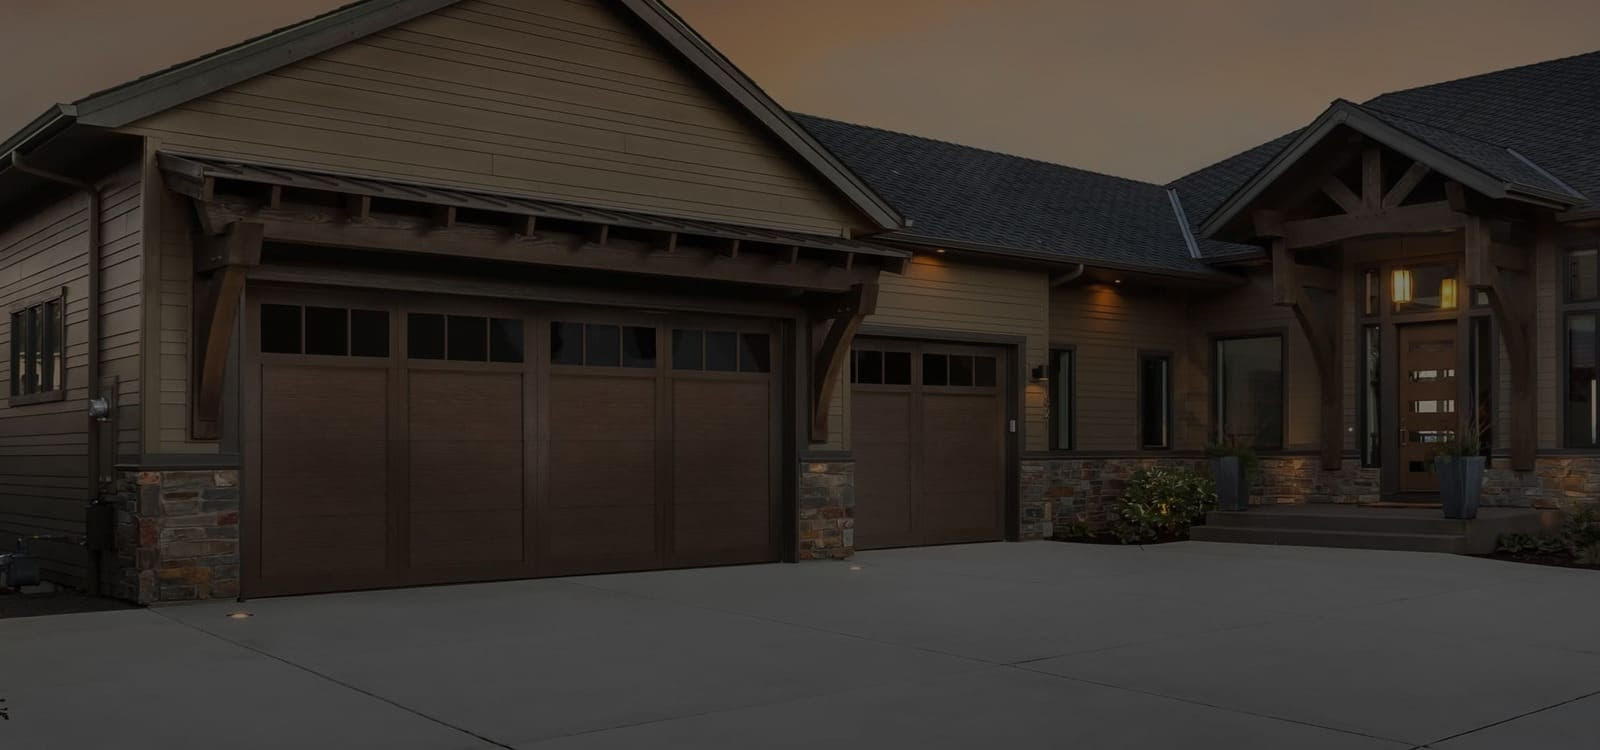 Garage Door Repair Cypress Tx Same Day Service Call 24 7